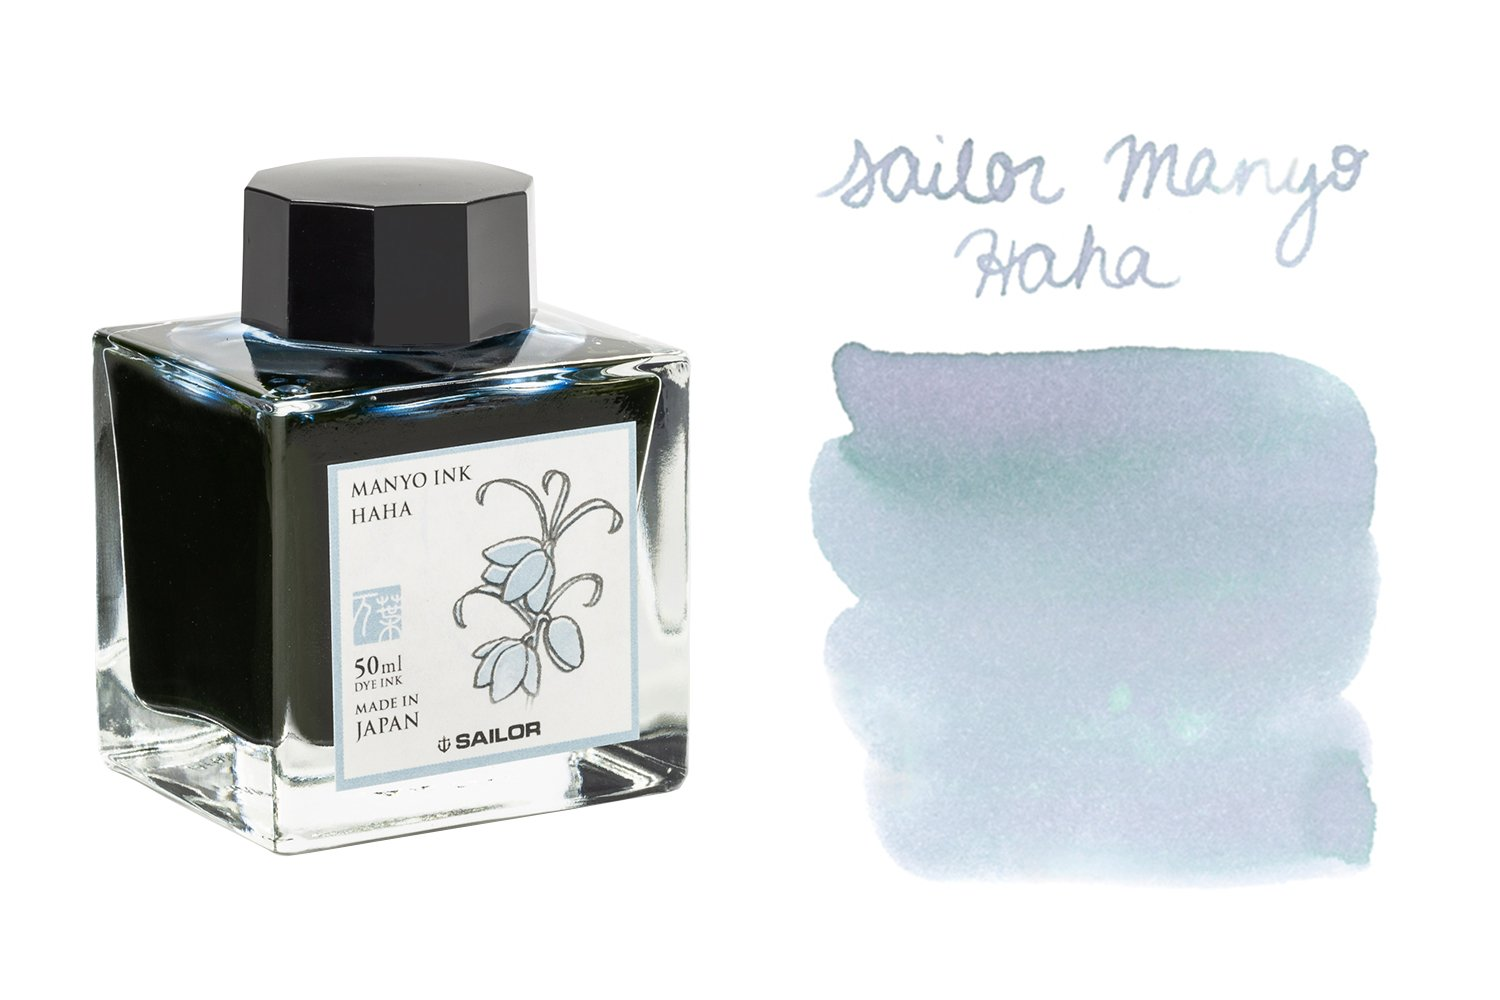 Sailor Manyo Haha - 50ml Bottled Ink